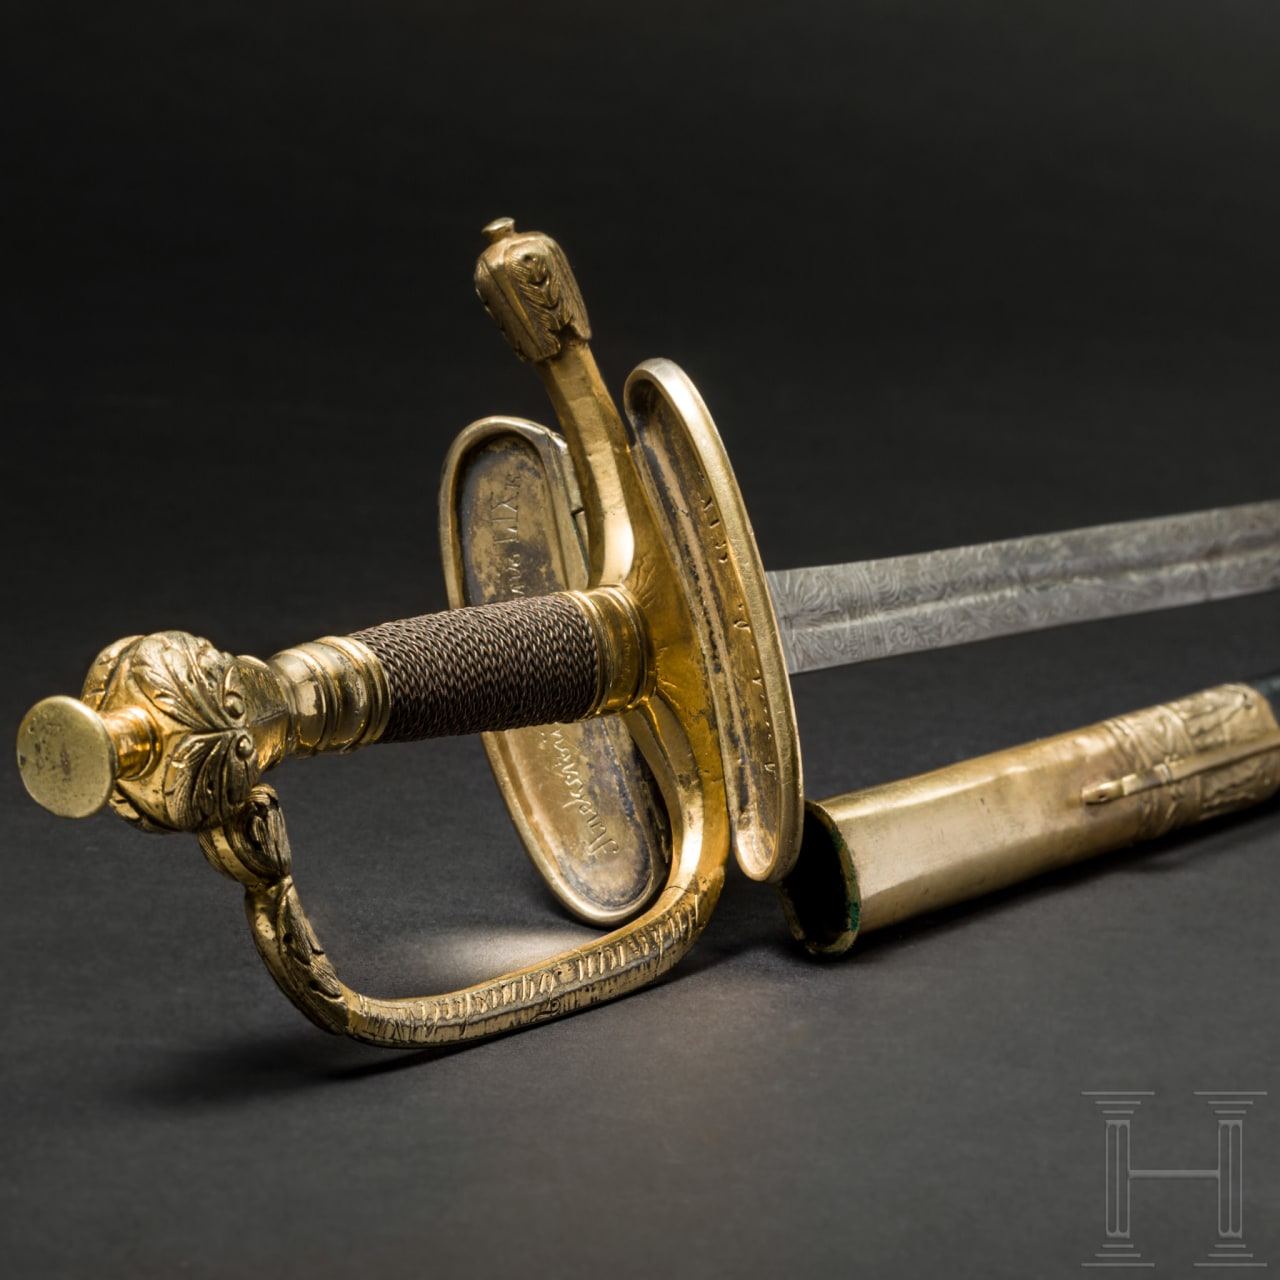 A sword M 1798 for officers of the Russian infantry, engraved with numerous names of the officers